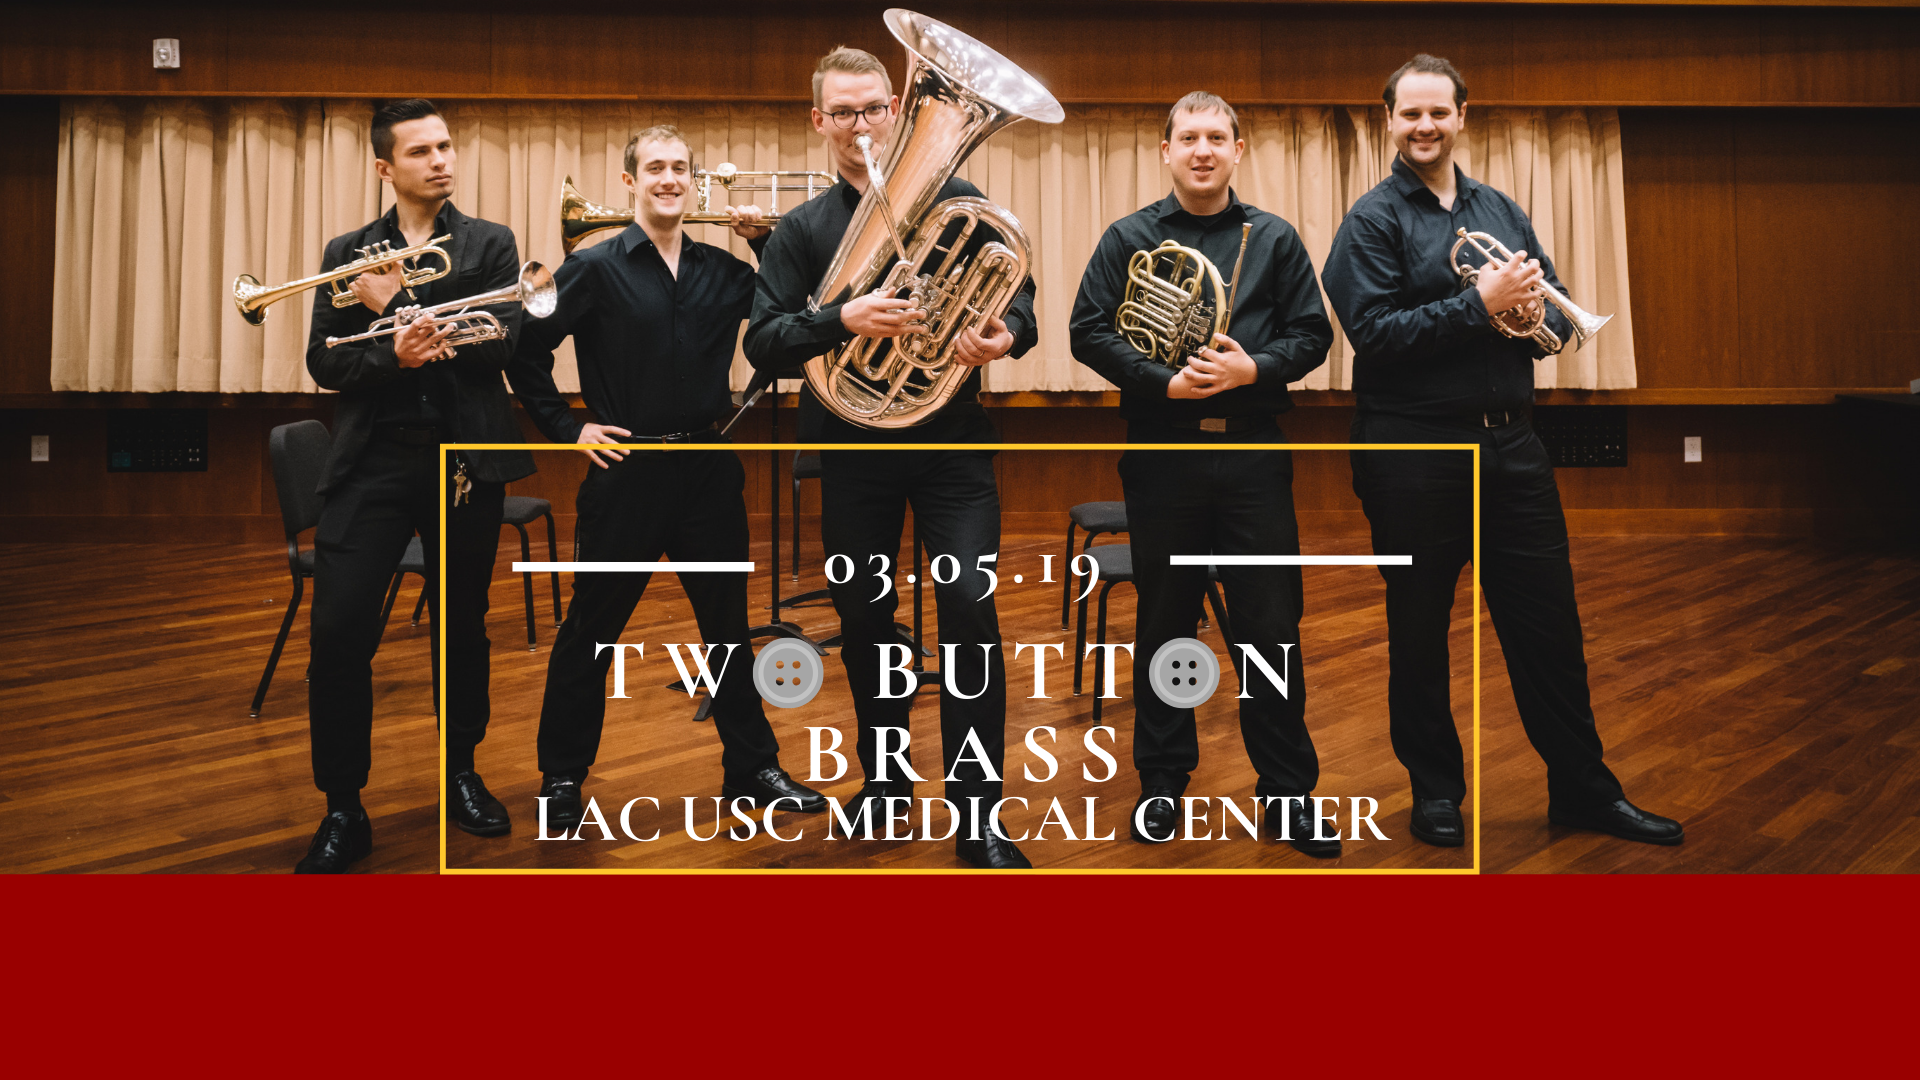 TBB @ USC+LAC Medical Center - Tuesday, March 5, 2019